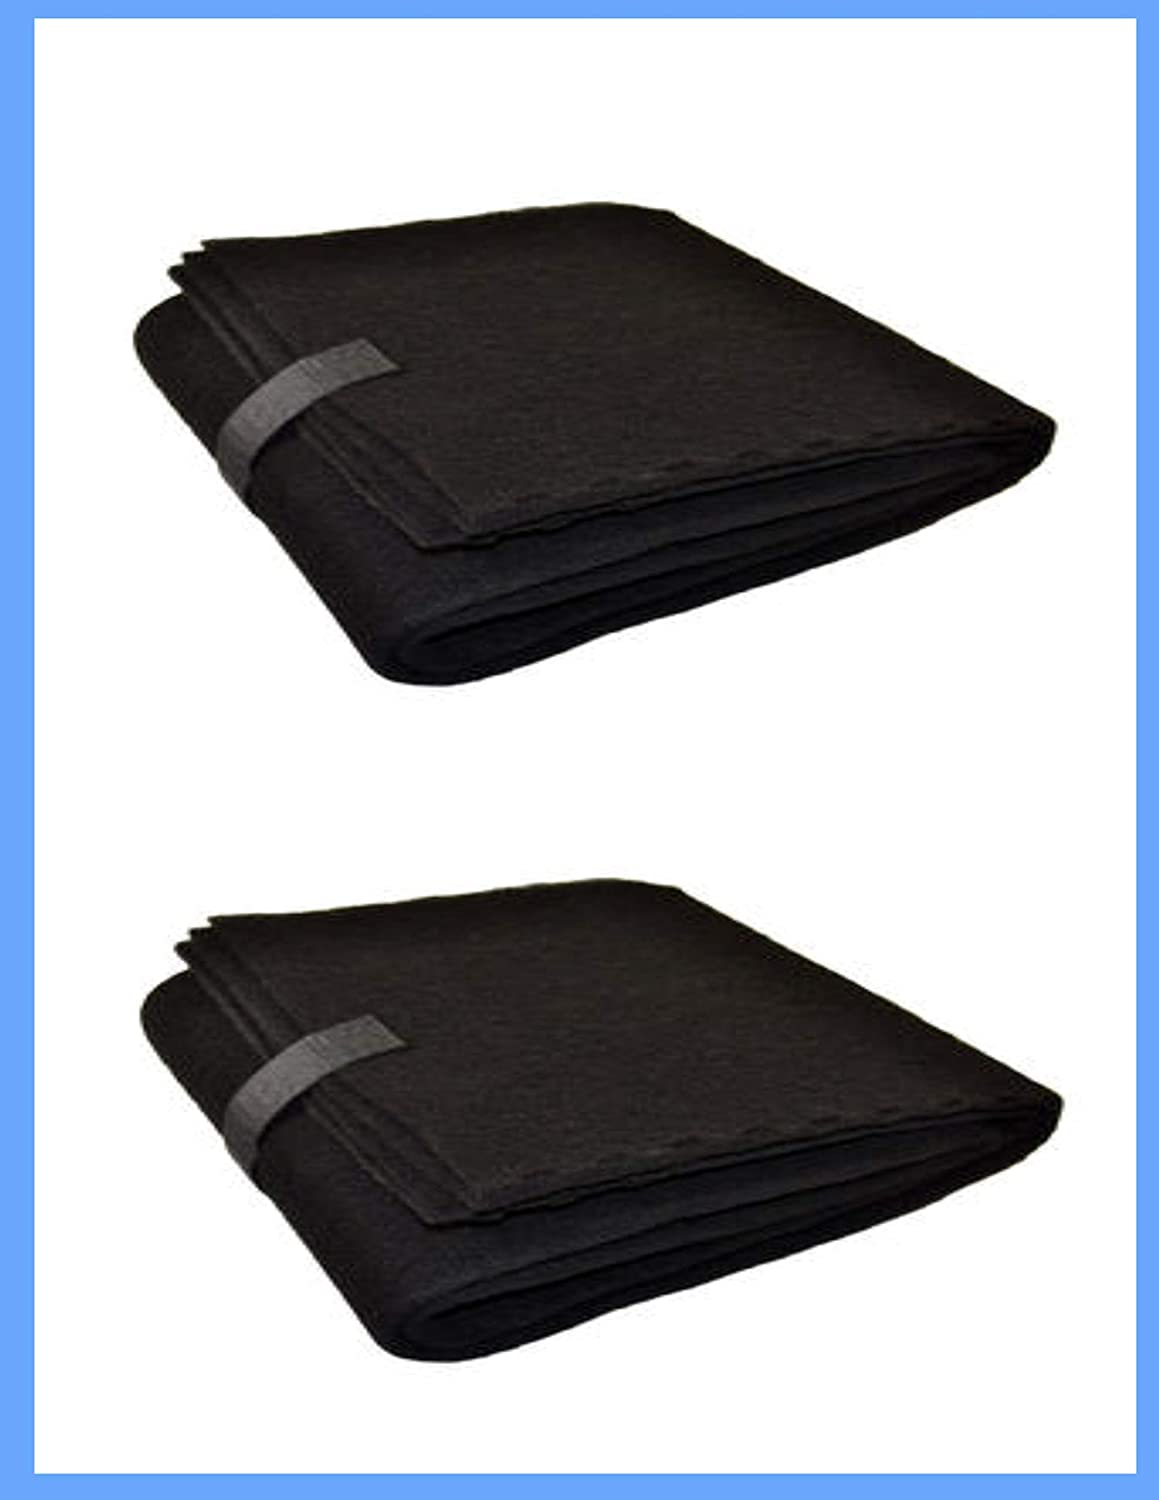 "Compatible Hunter QuietFlo 16"" x 48"" Carbon Pre Filters Cut to fit Pad - 2 Pack by CFS"